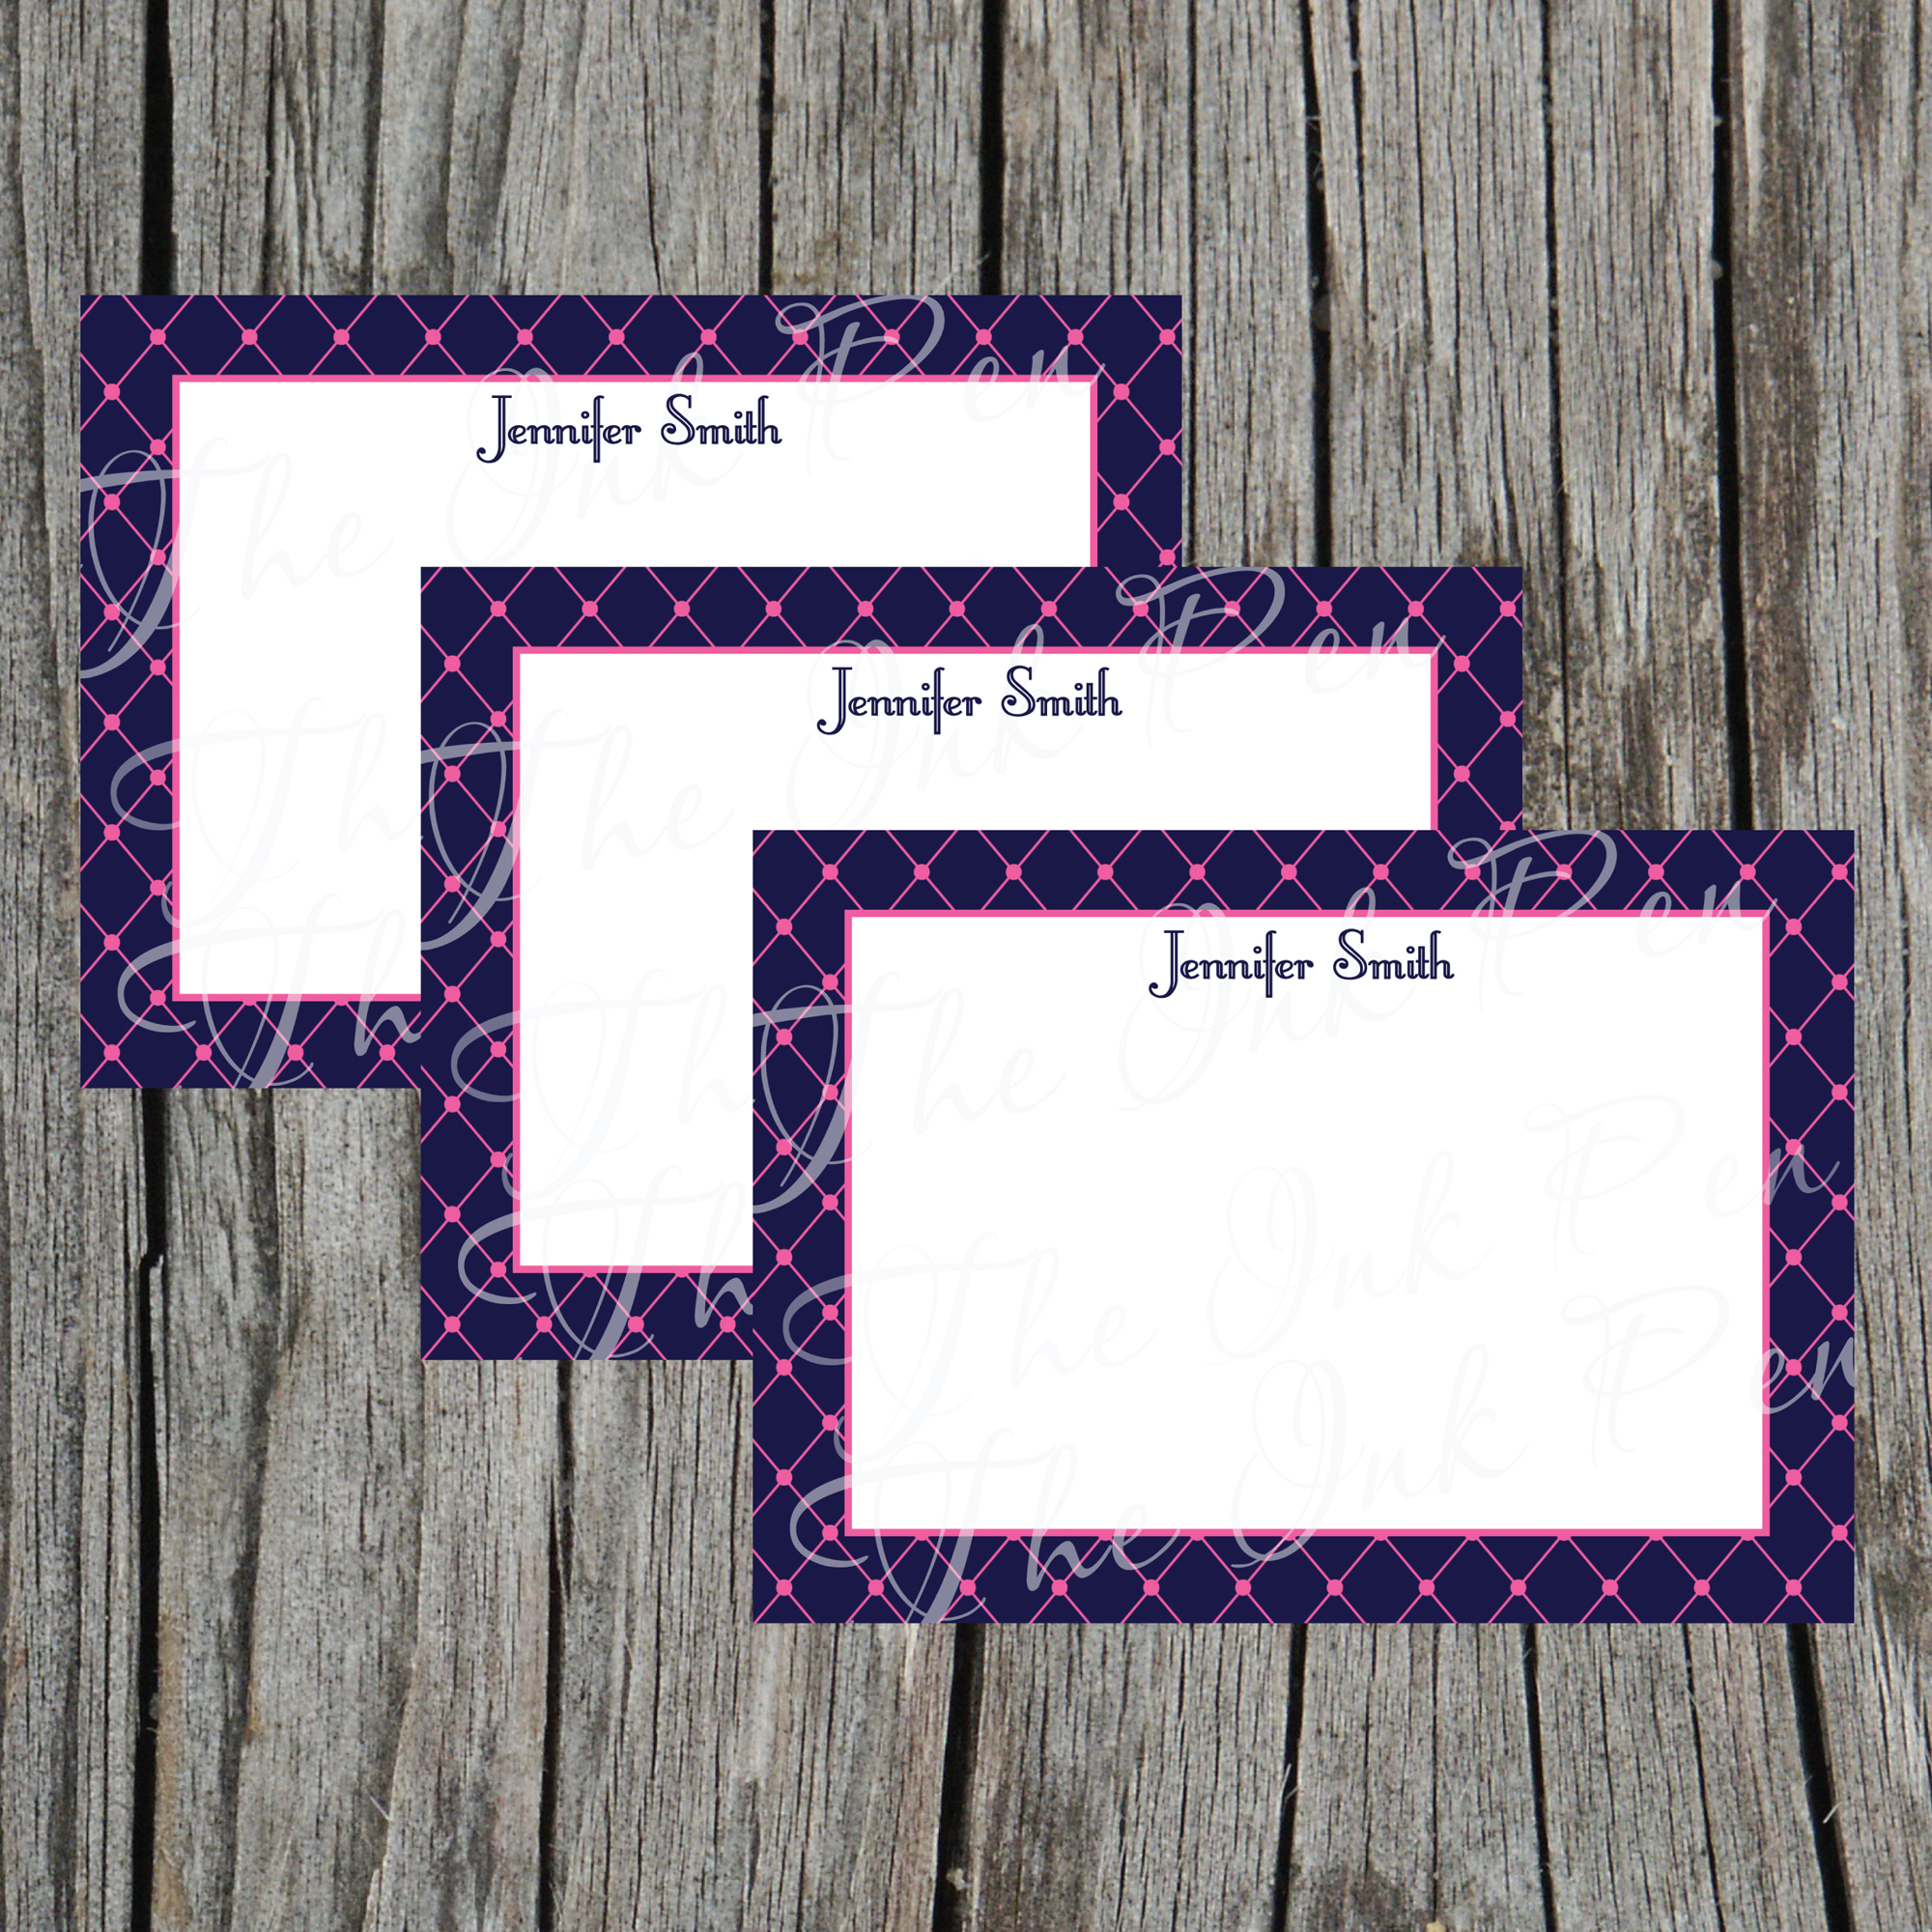 photograph relating to Printable Notecard named Basketweave Electronic Printable Notecard in opposition to Ooh La La Printables